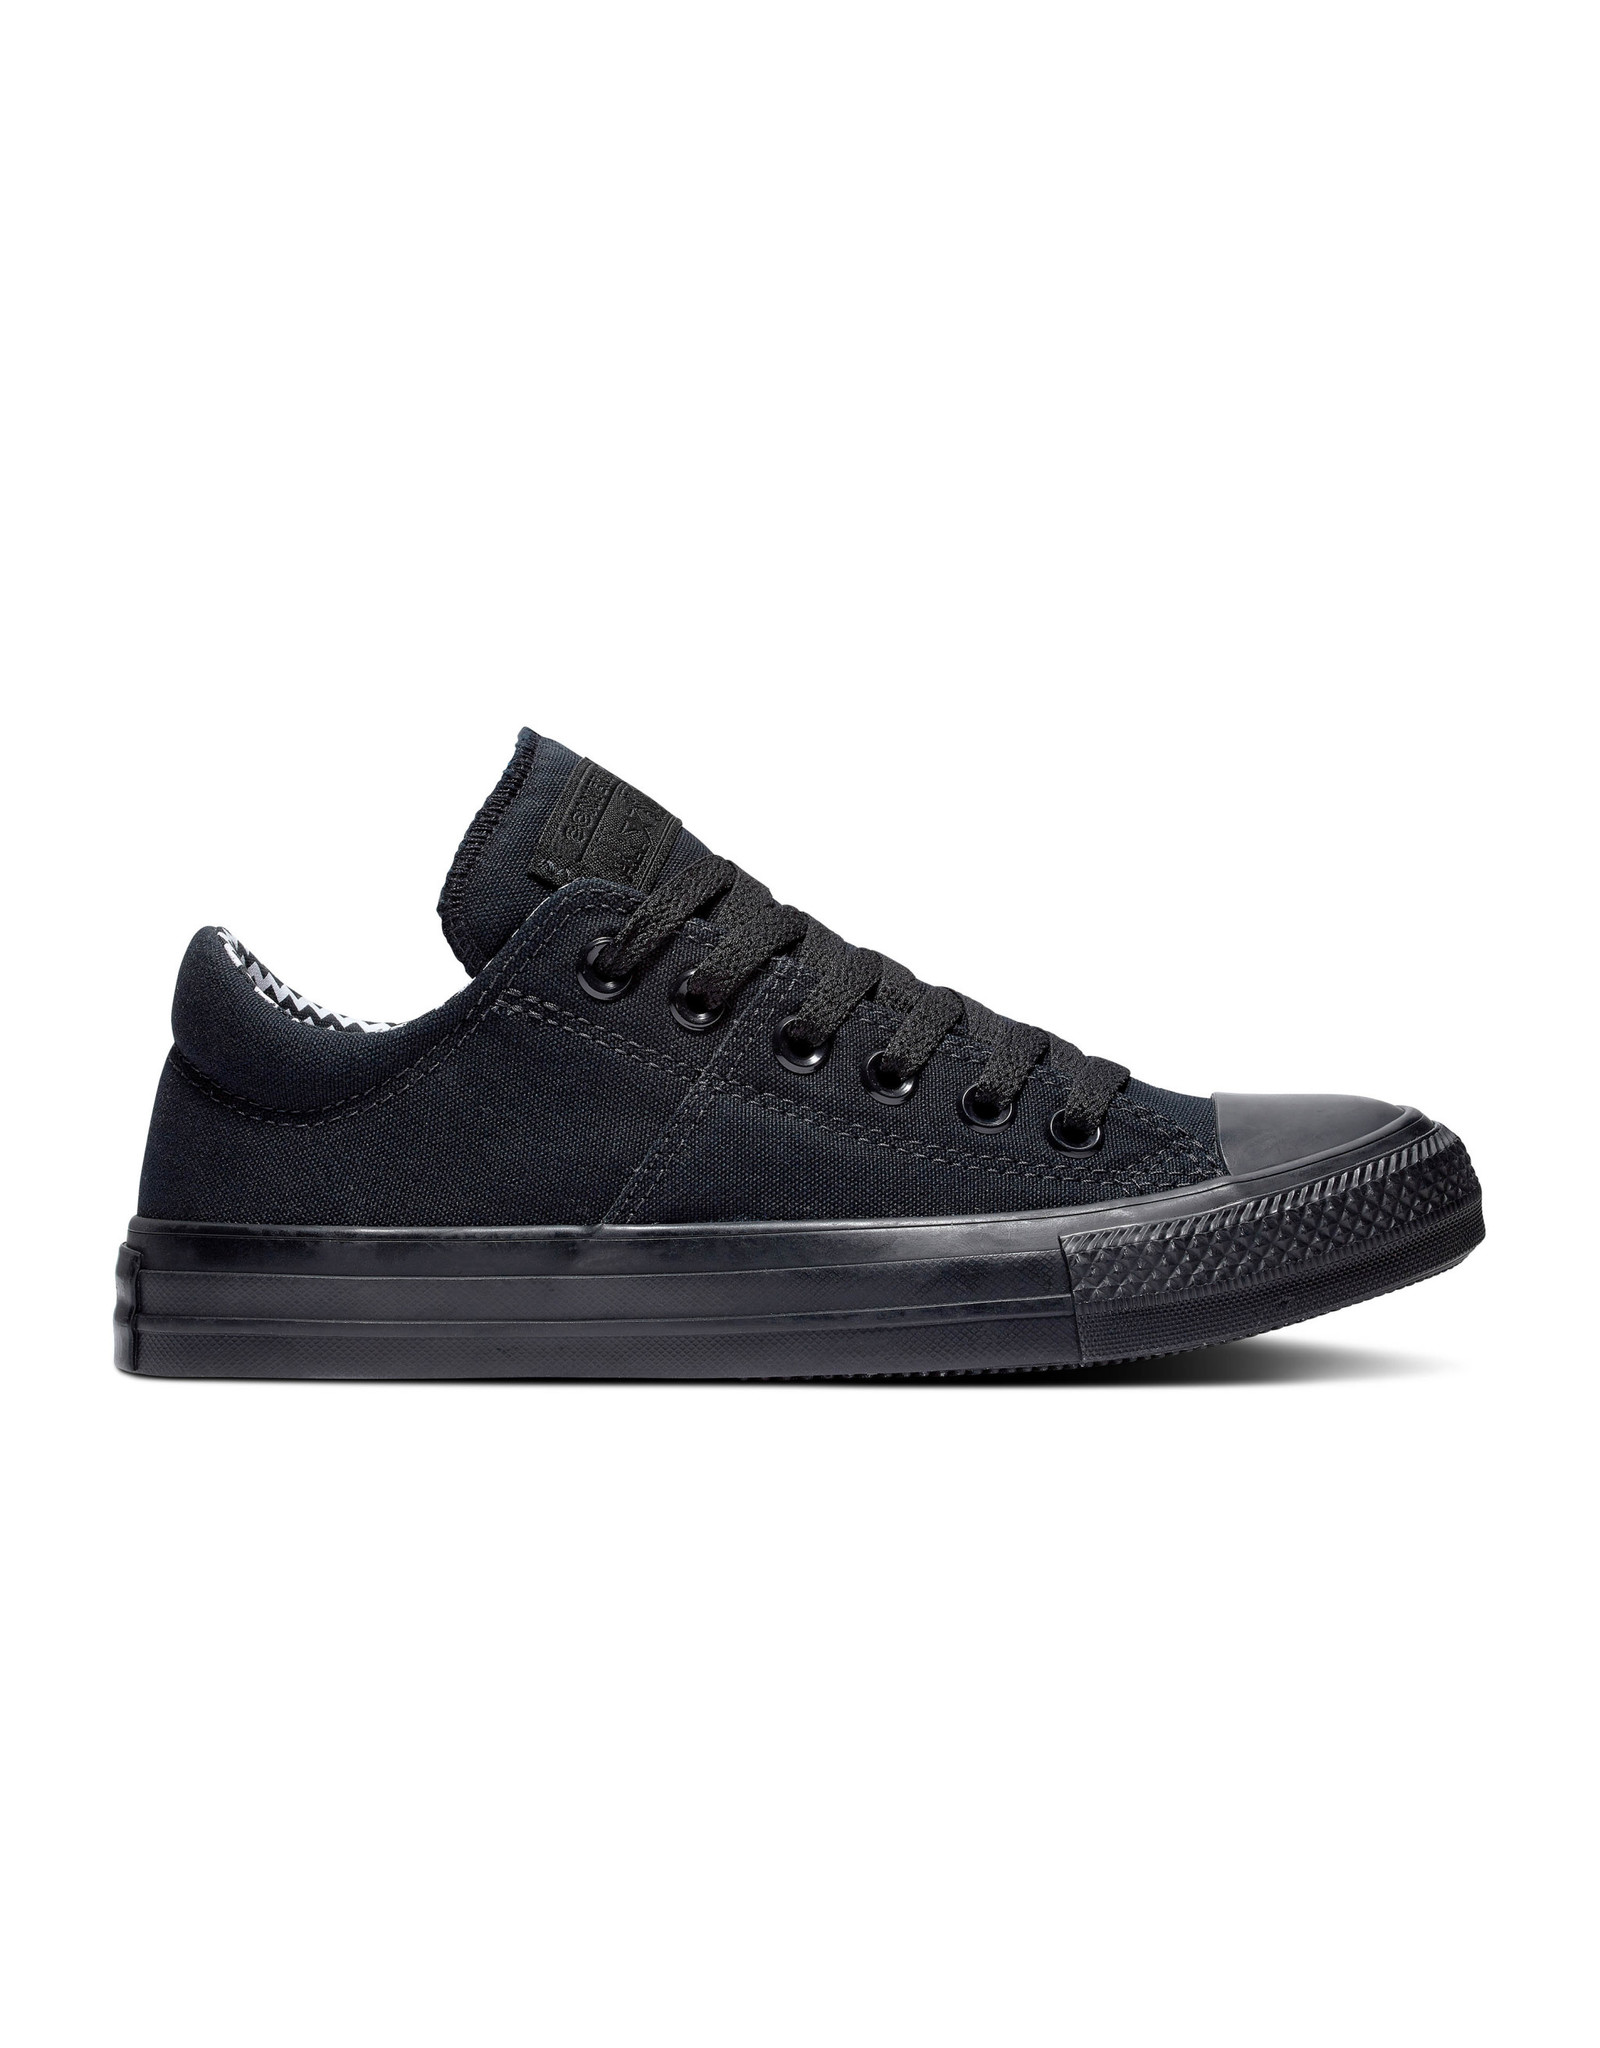 CONVERSE CHUCK TAYLOR ALL STAR MADISON OX BLACK/WHITE/BLACK C13MMO-565224C